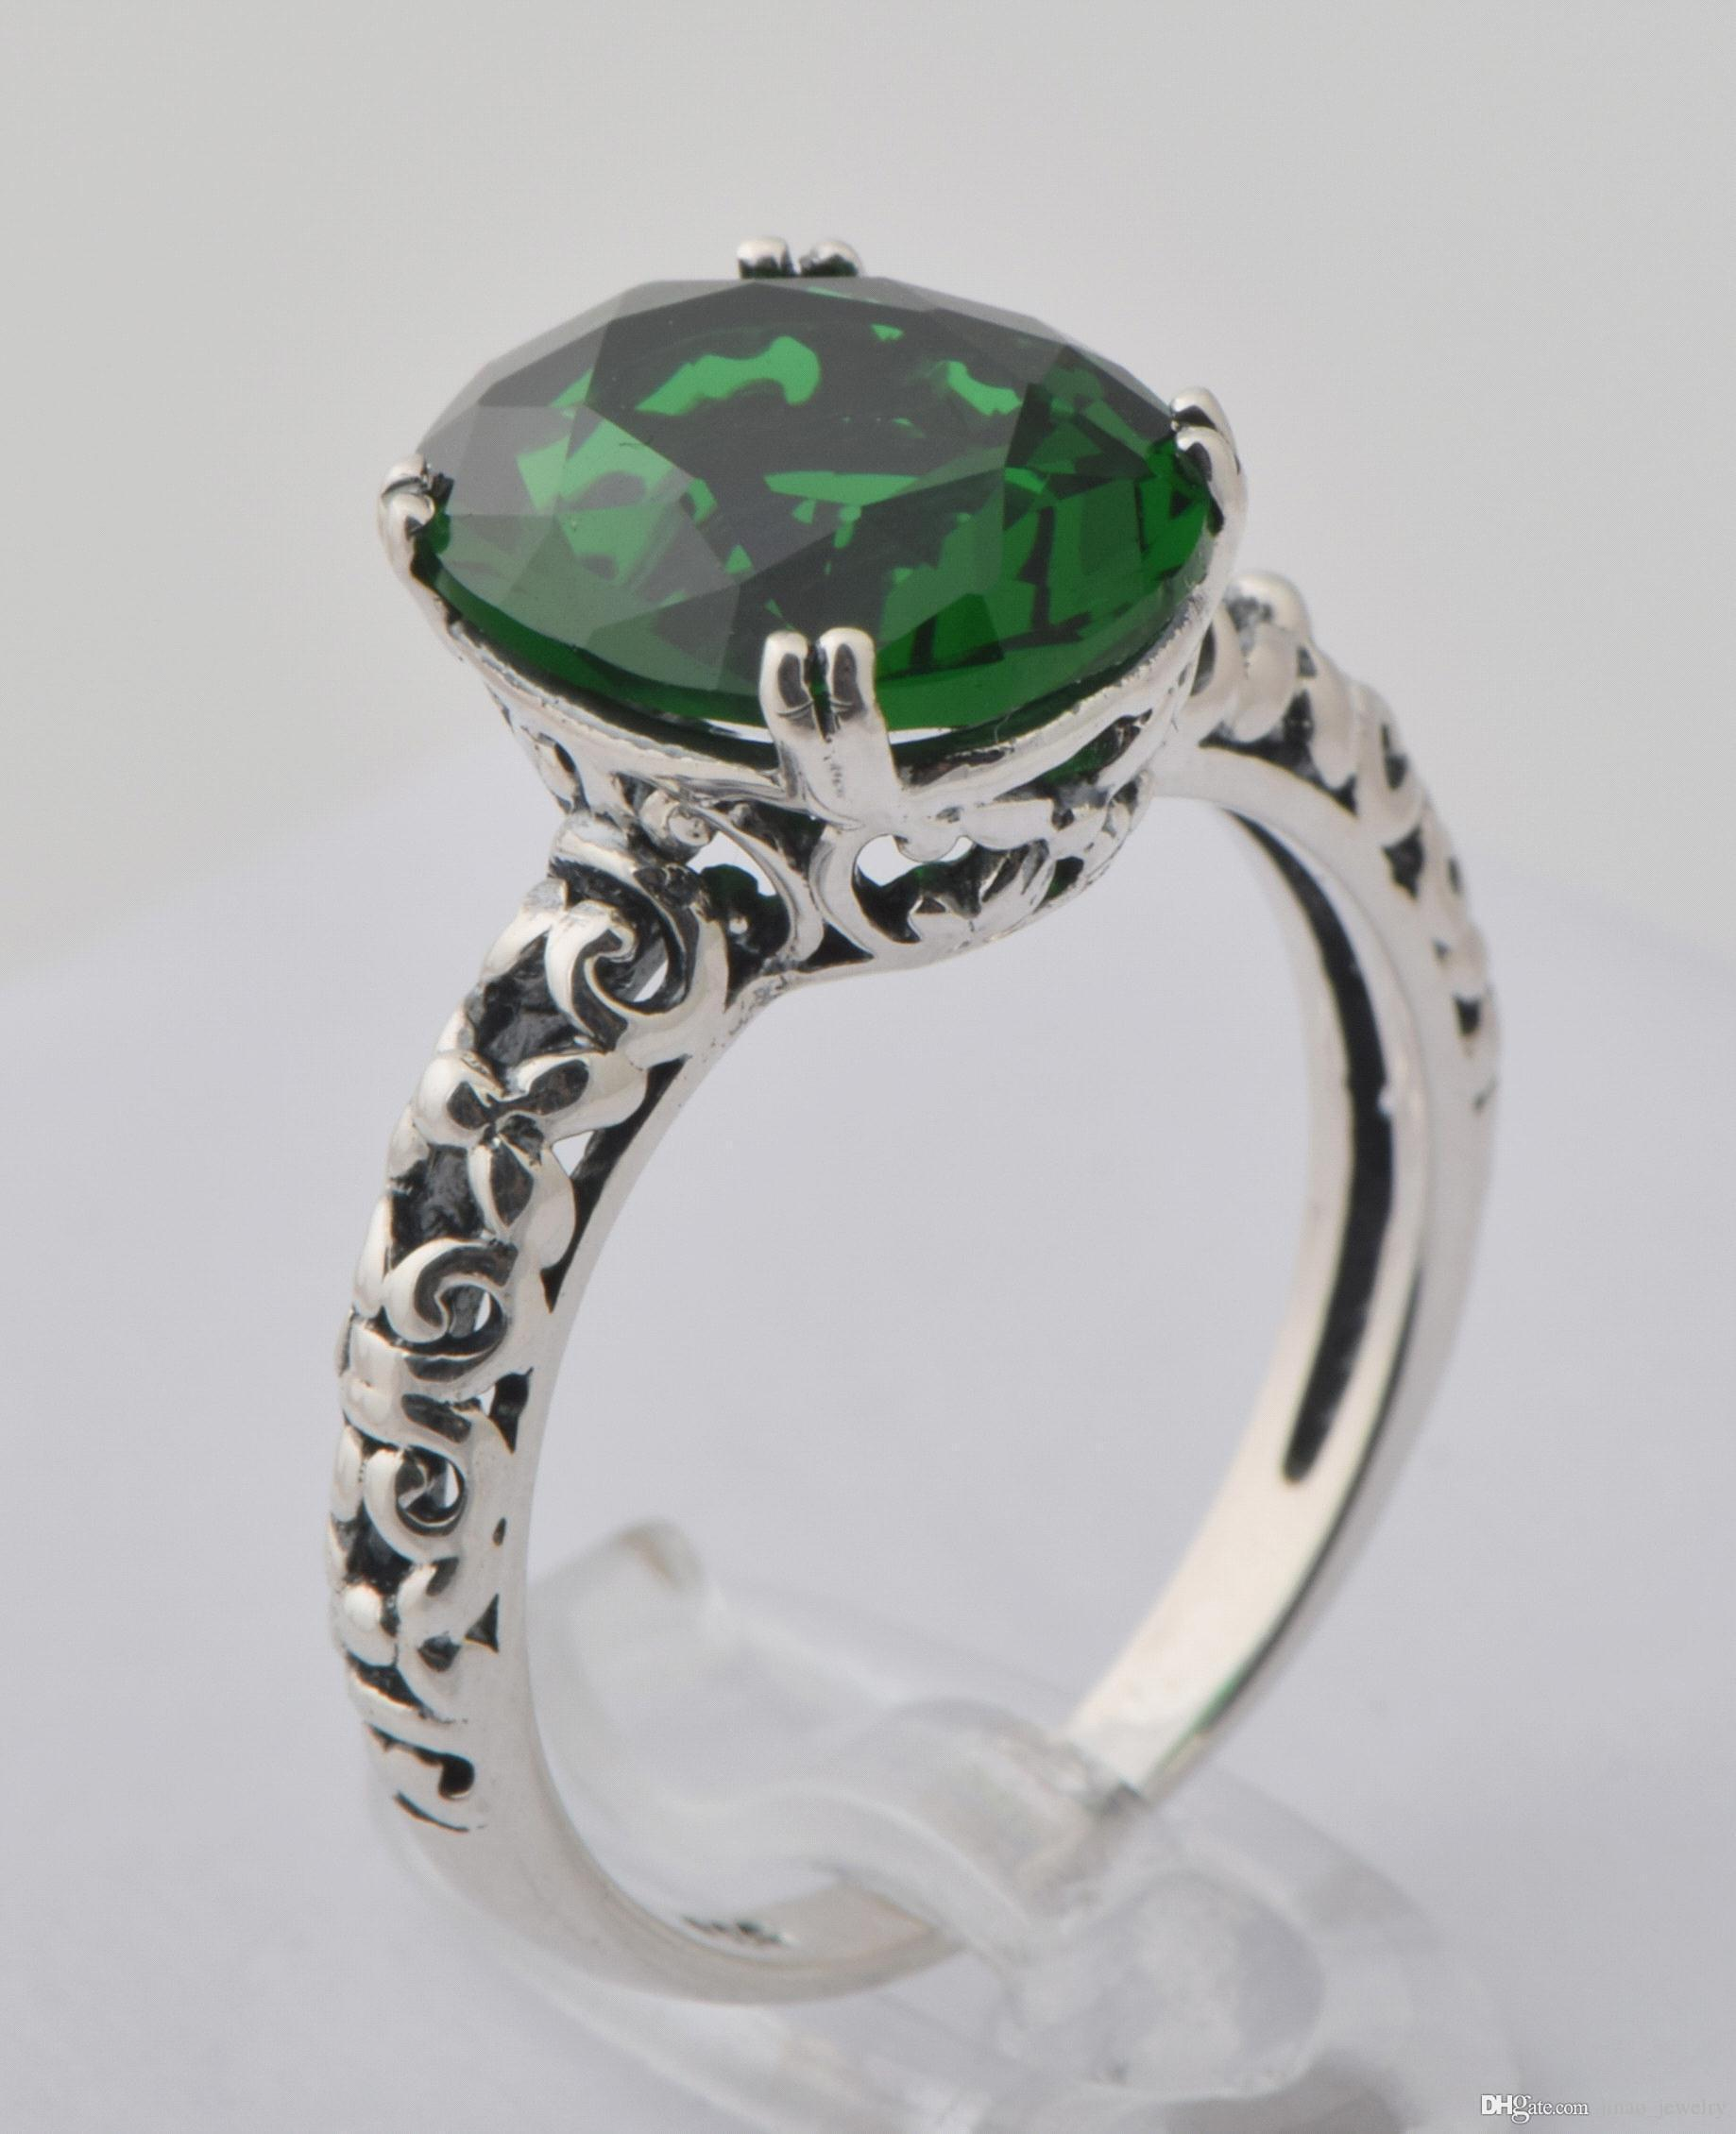 garnet img the virginia tsavorite diamond and emeral in products from ring elizabeth collection rings green henry